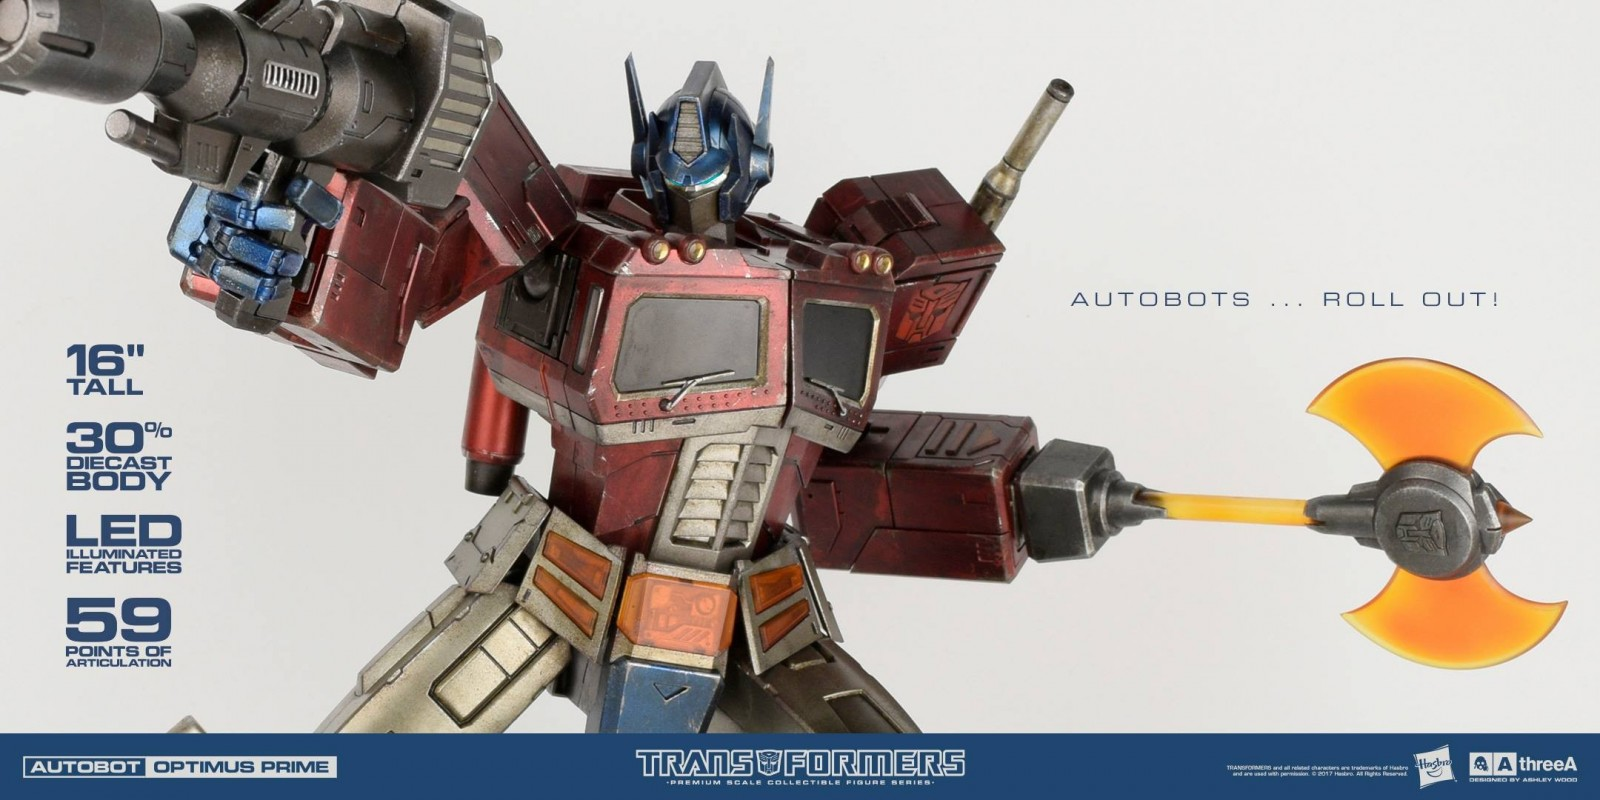 Transformers News: New Images of Hasbro 3A Transformers Generation 1 Optimus Prime Statue